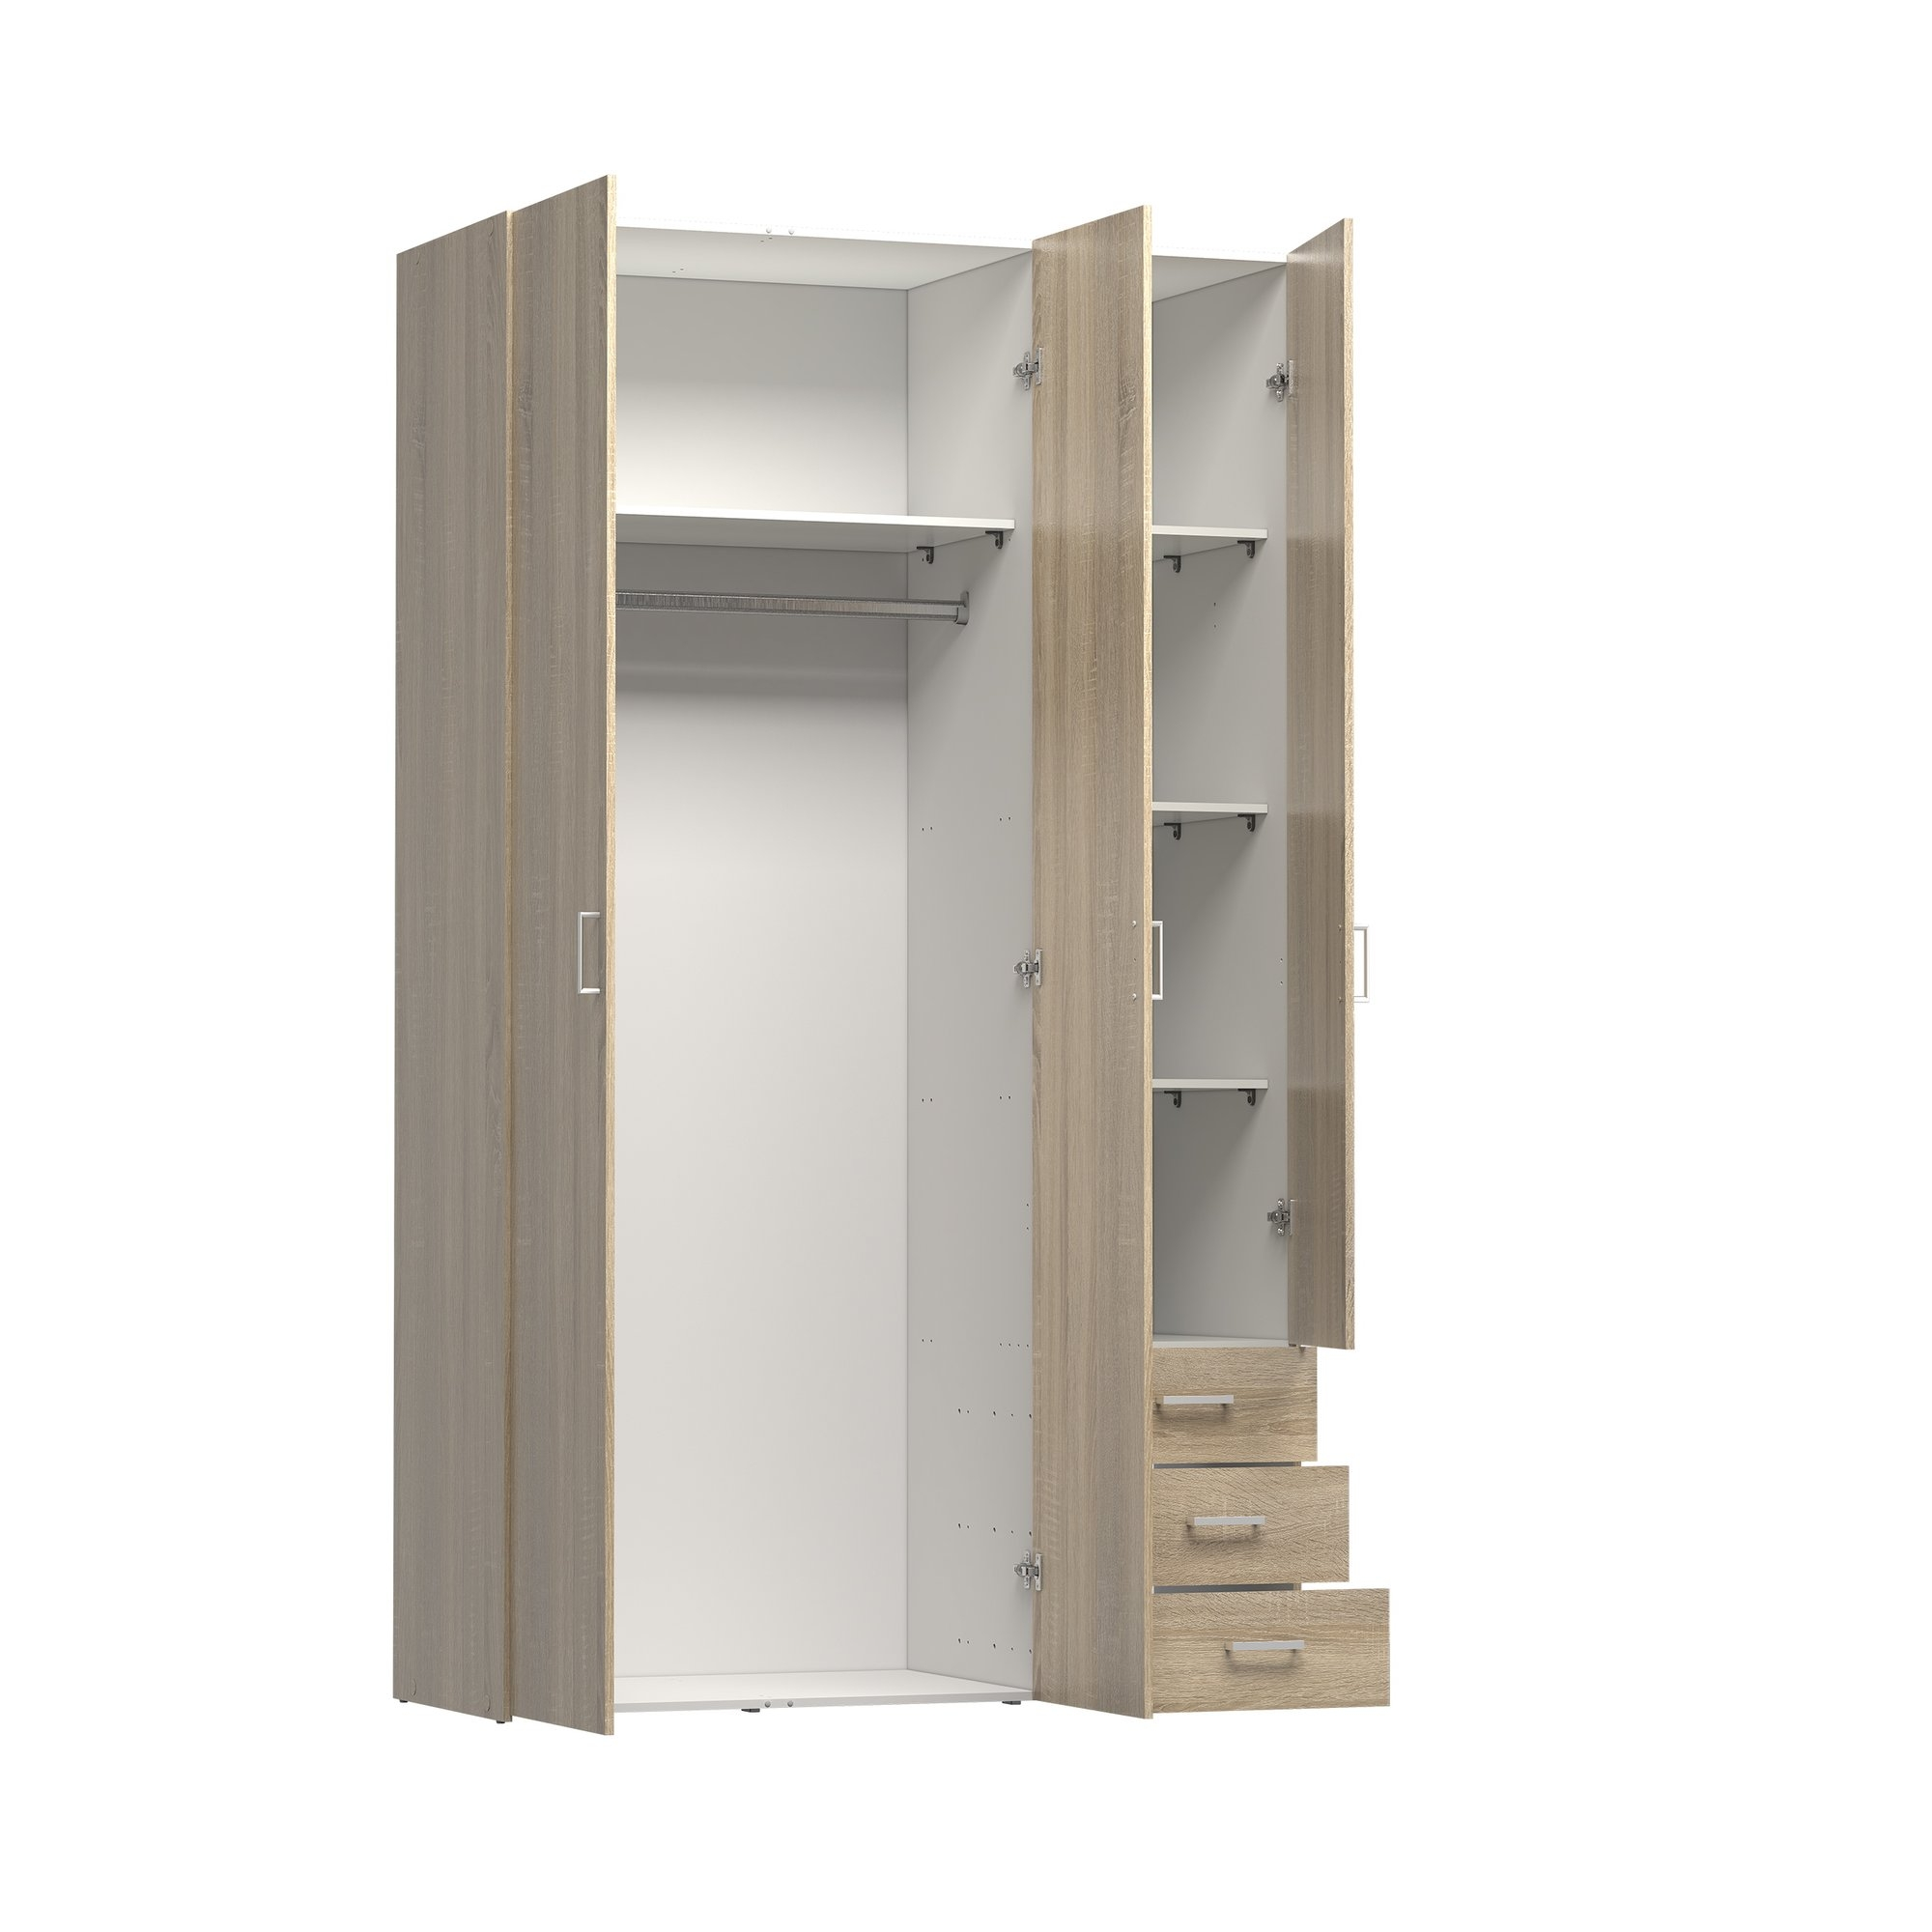 Wardrobe With Shelves And Drawers Best Drawer Model In Wardrobe With Shelves And Drawers (View 11 of 15)